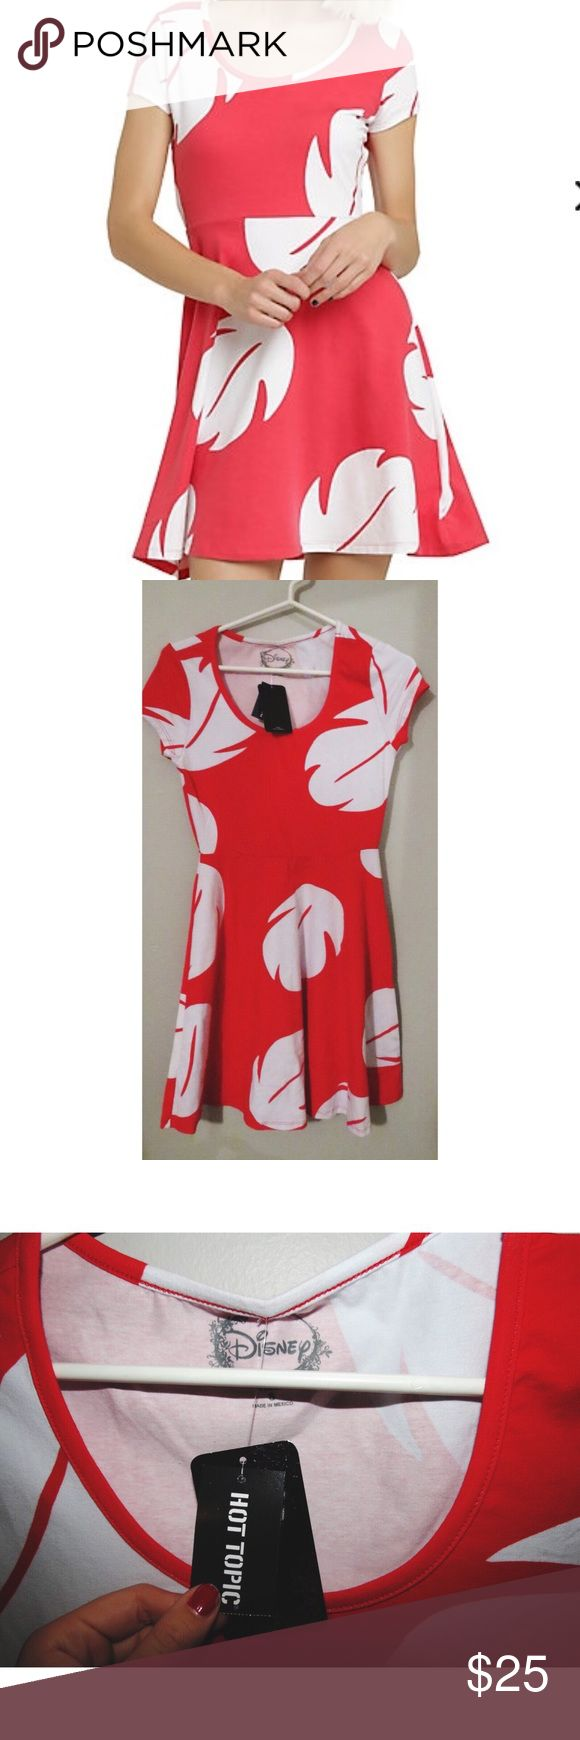 NWT Hot Topic Disney Lilo Dress Lilo's dress from Lilo & Stitch. Was a gift and has never been worn (color of dress is closer to the one in the stock photo) Hot Topic Dresses Midi